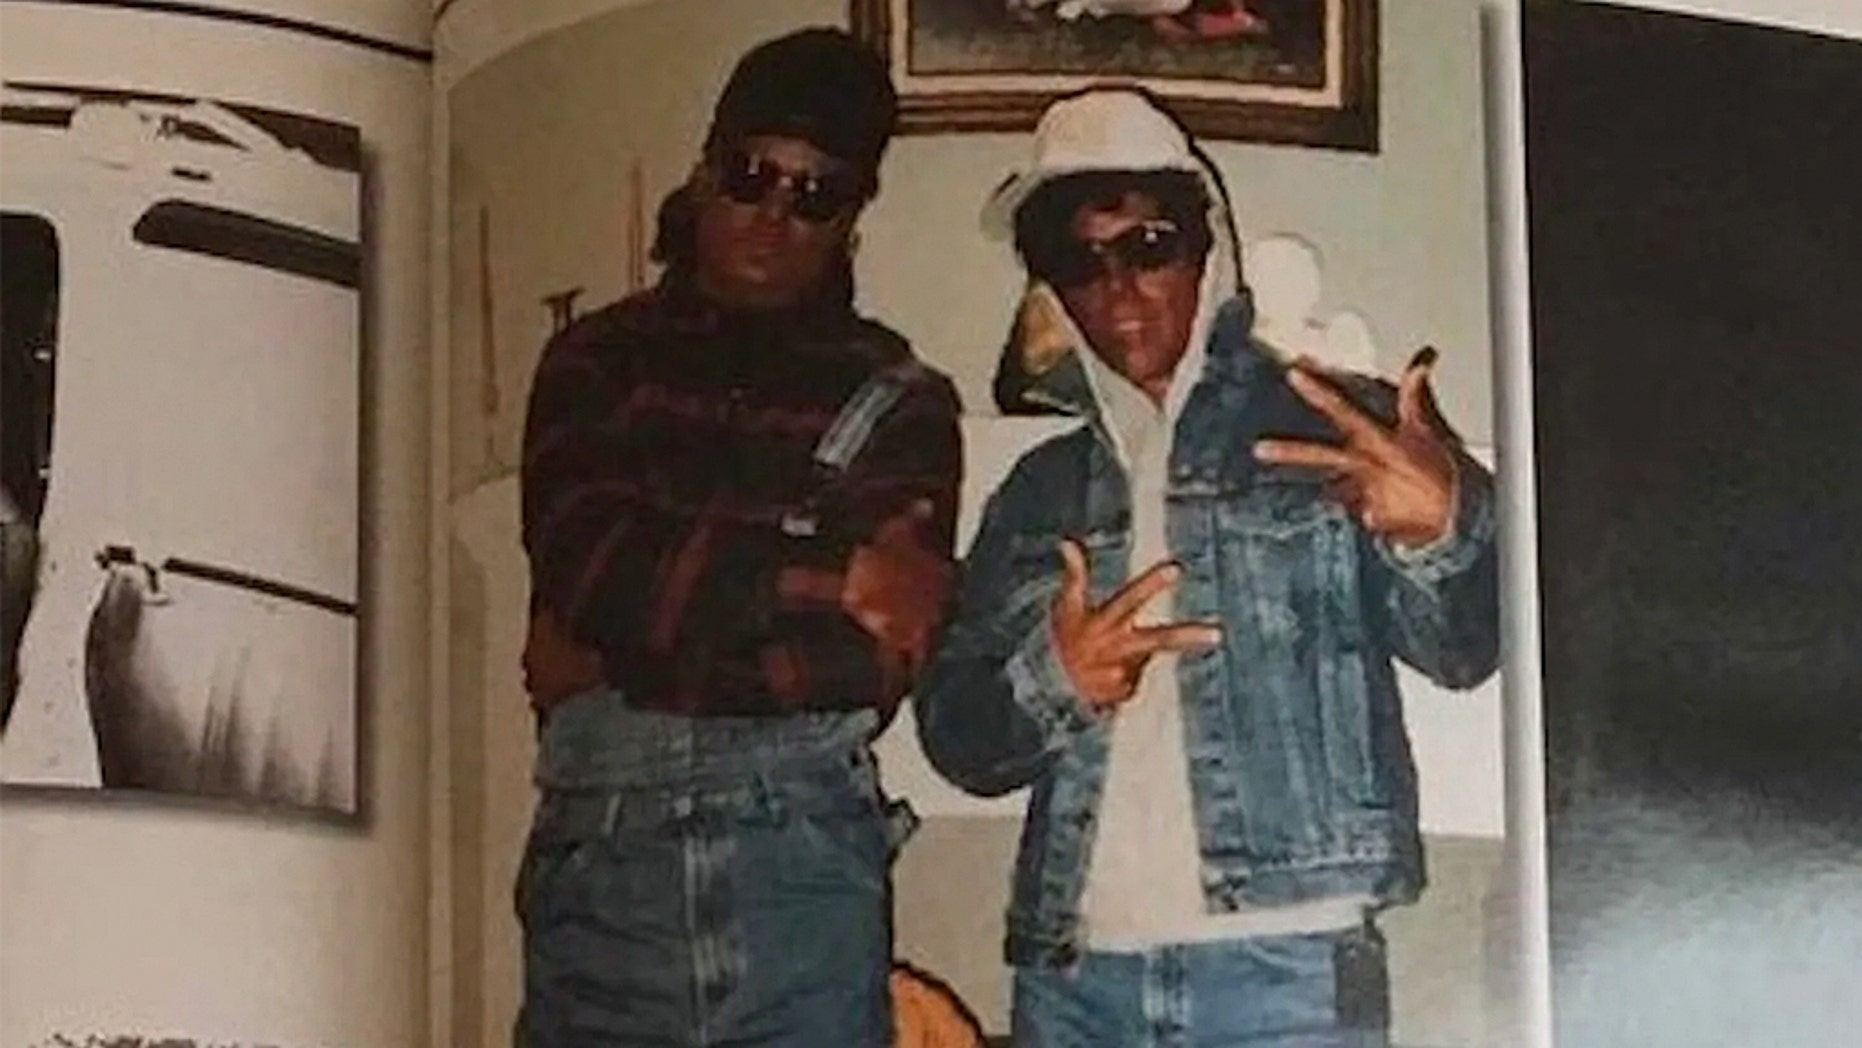 Two Baton Rouge, La., police officers are seen wearing blackface as part of an undercover narcotics operation in 1993. The photo of the two officers resurfaced this week.